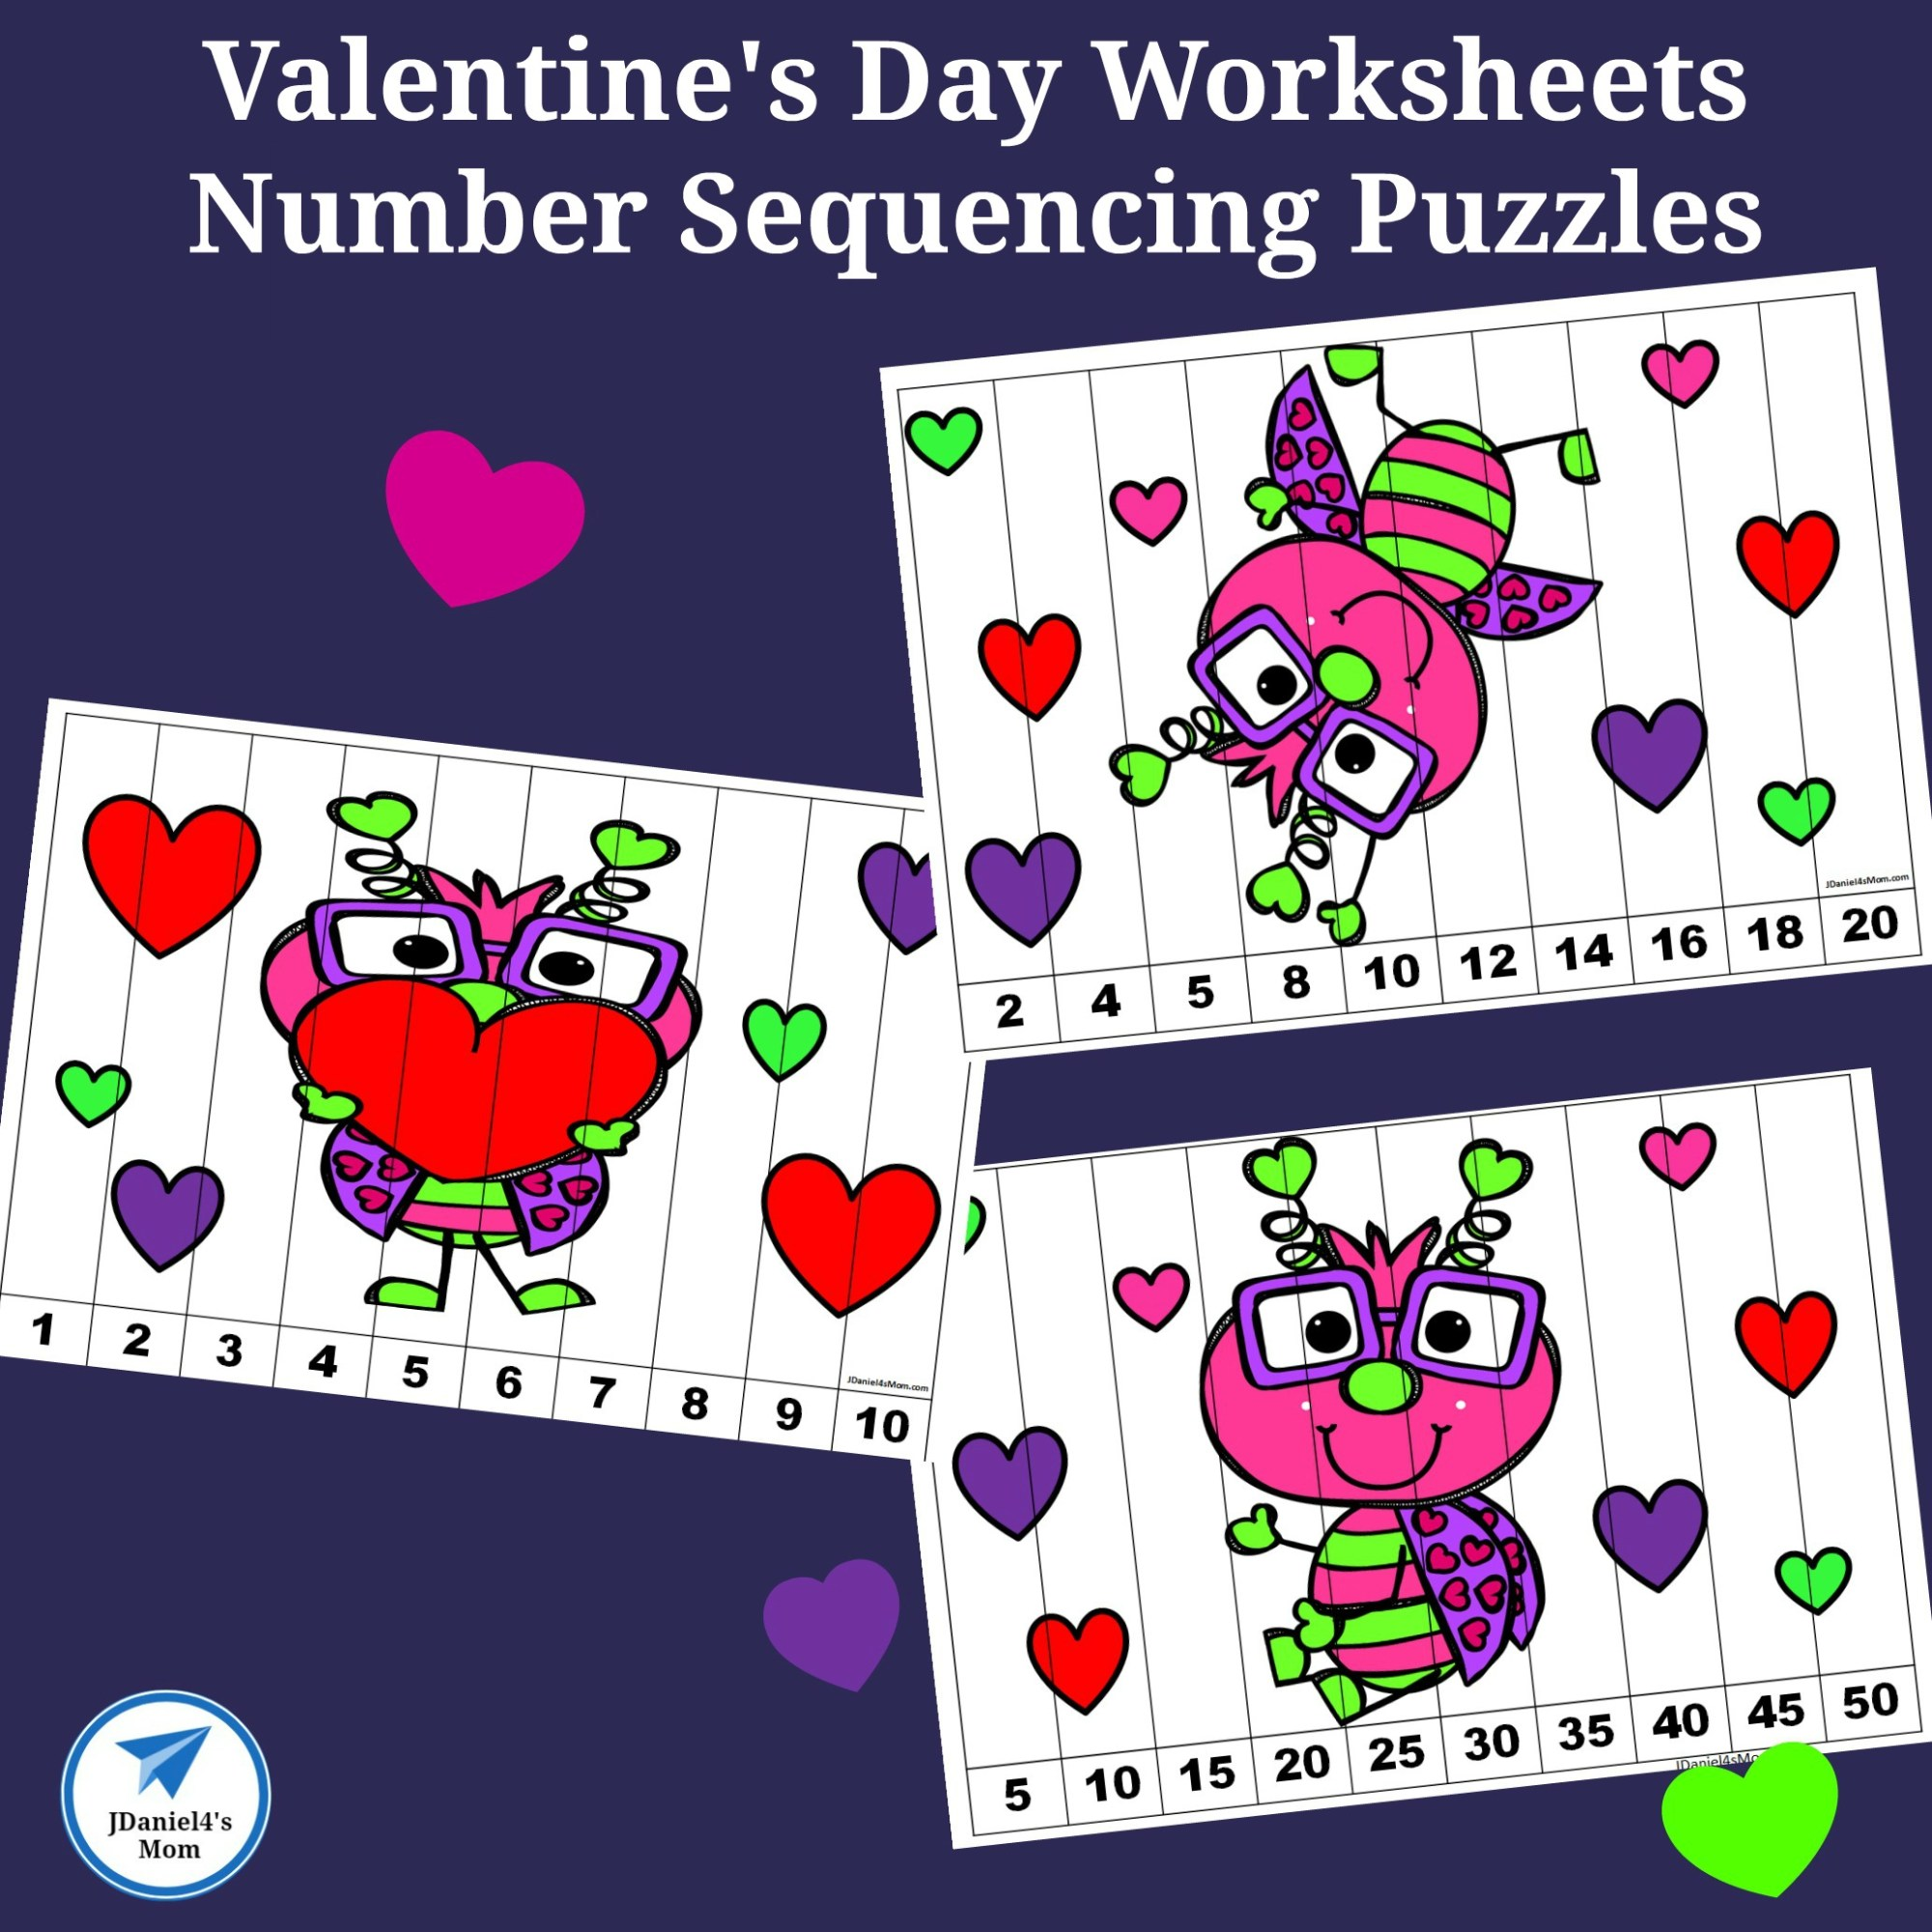 hight resolution of Valentine's Day Worksheets - Number Sequencing Puzzles - JDaniel4s Mom